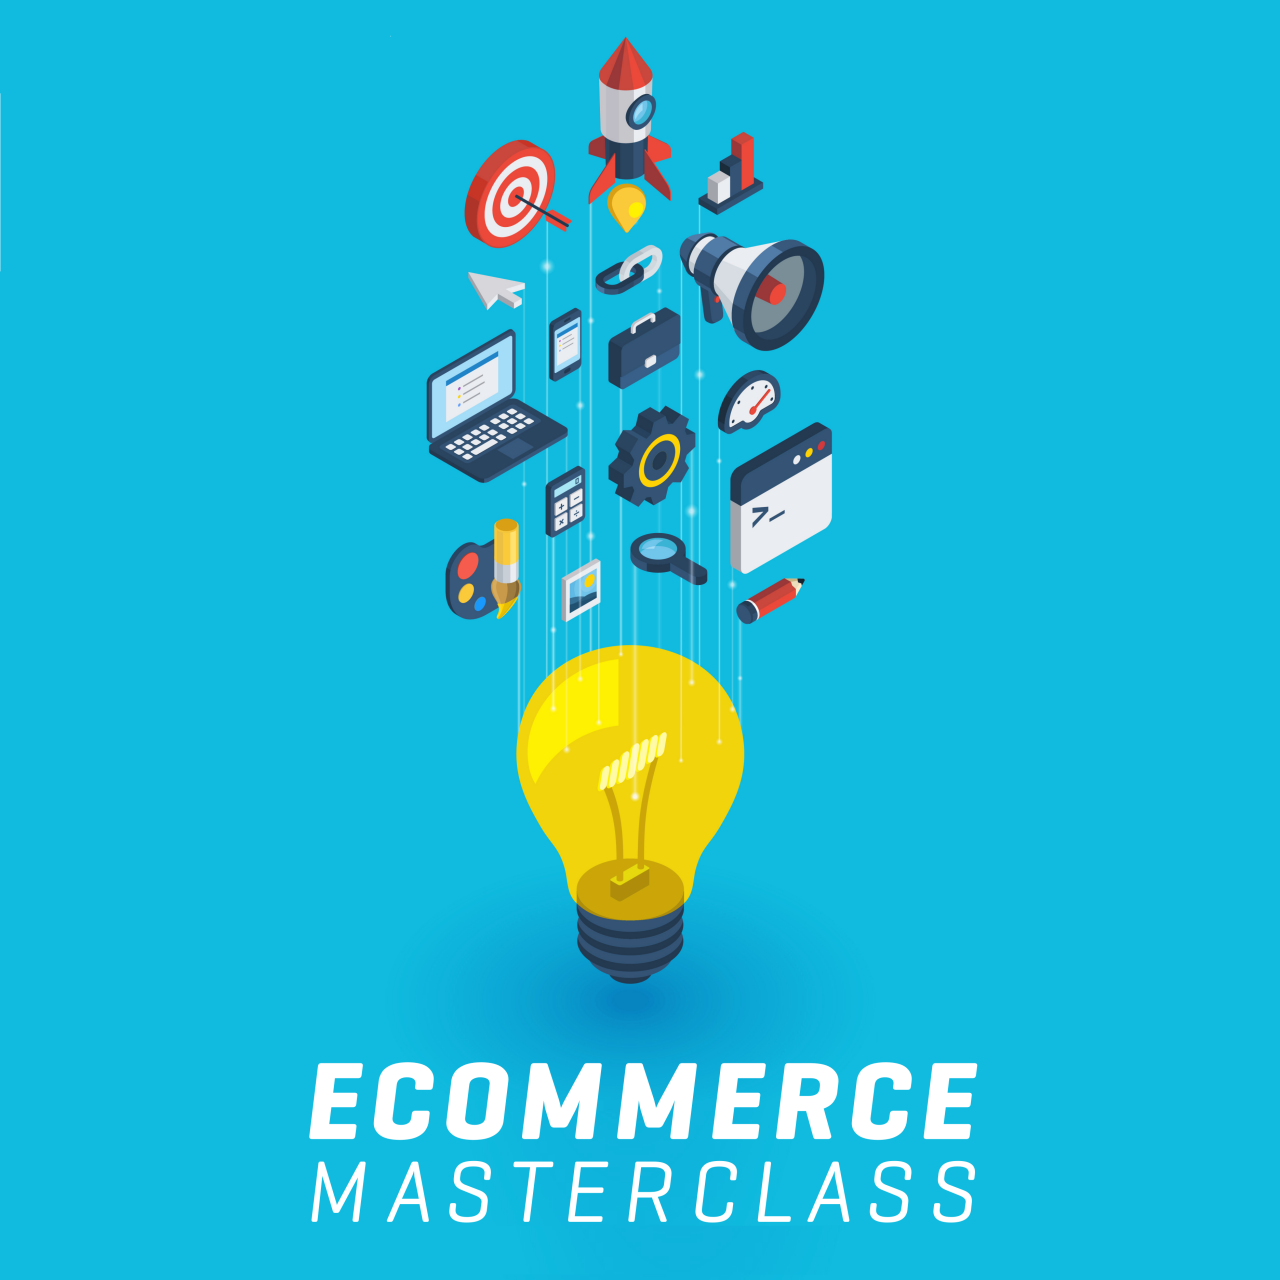 eCommerce Masterclass: How to Build an Online Business [2020 Edition]